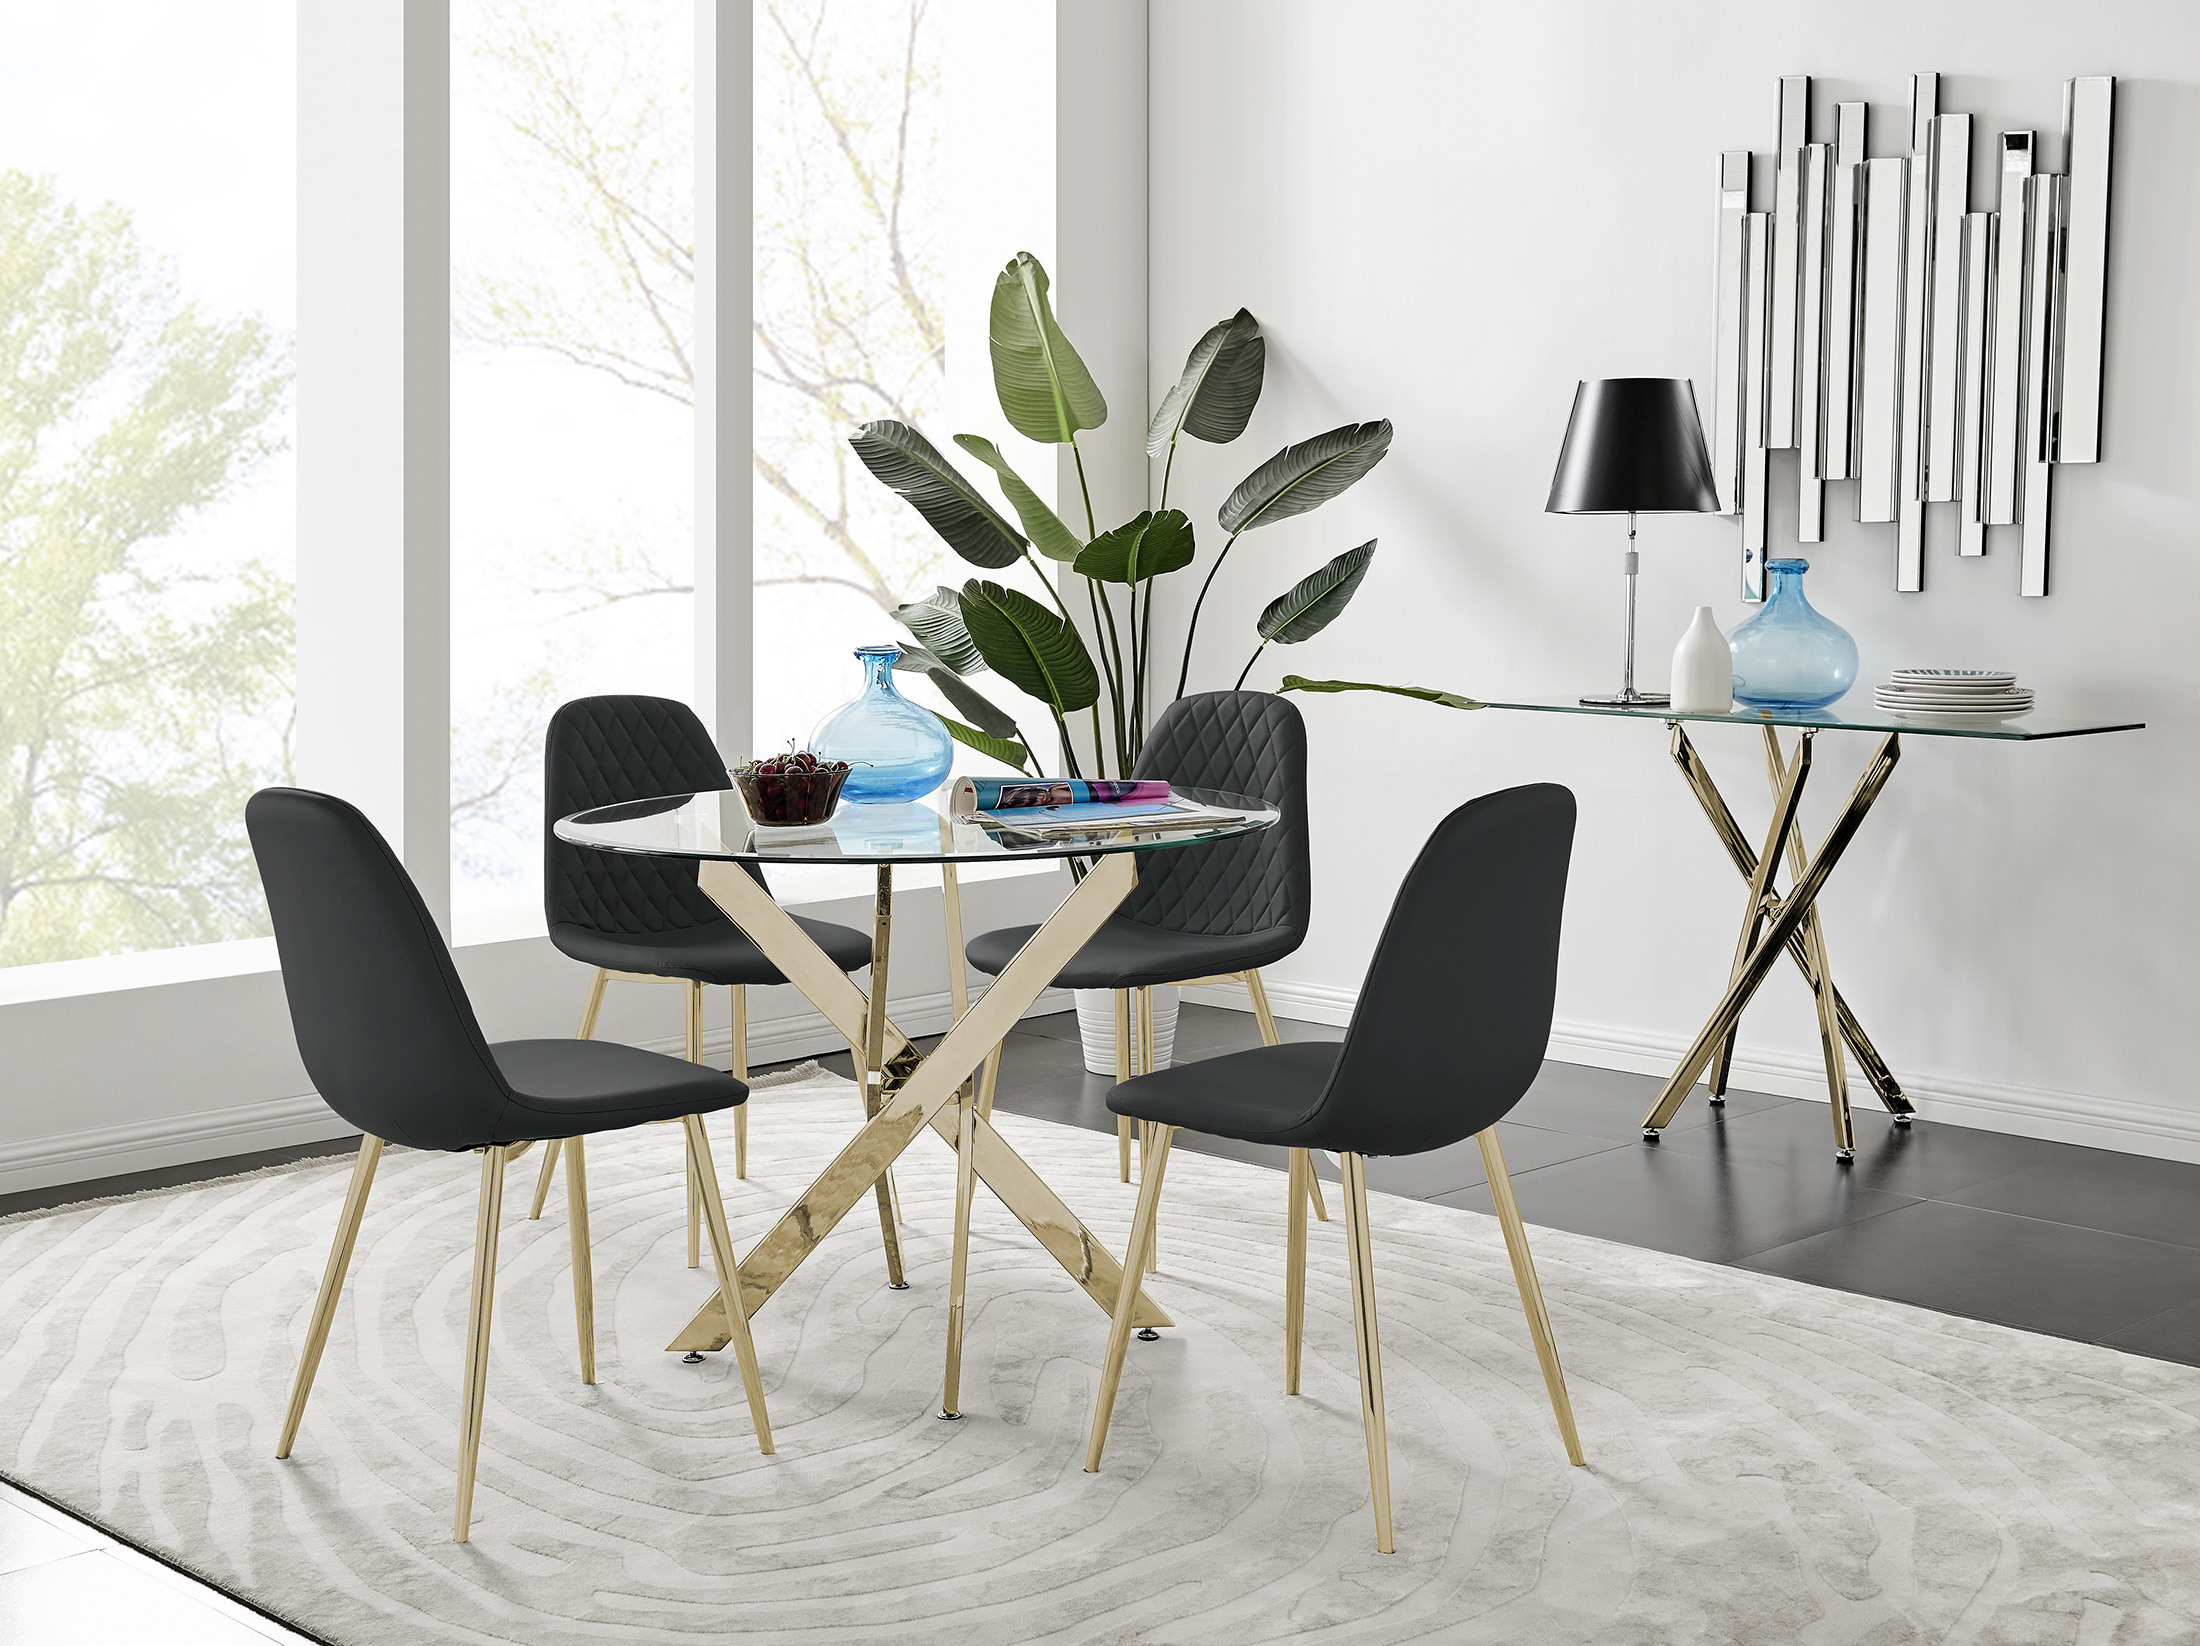 Dining Table 4 Gold Leg Chairs, Round Kitchen Tables And Chairs Uk